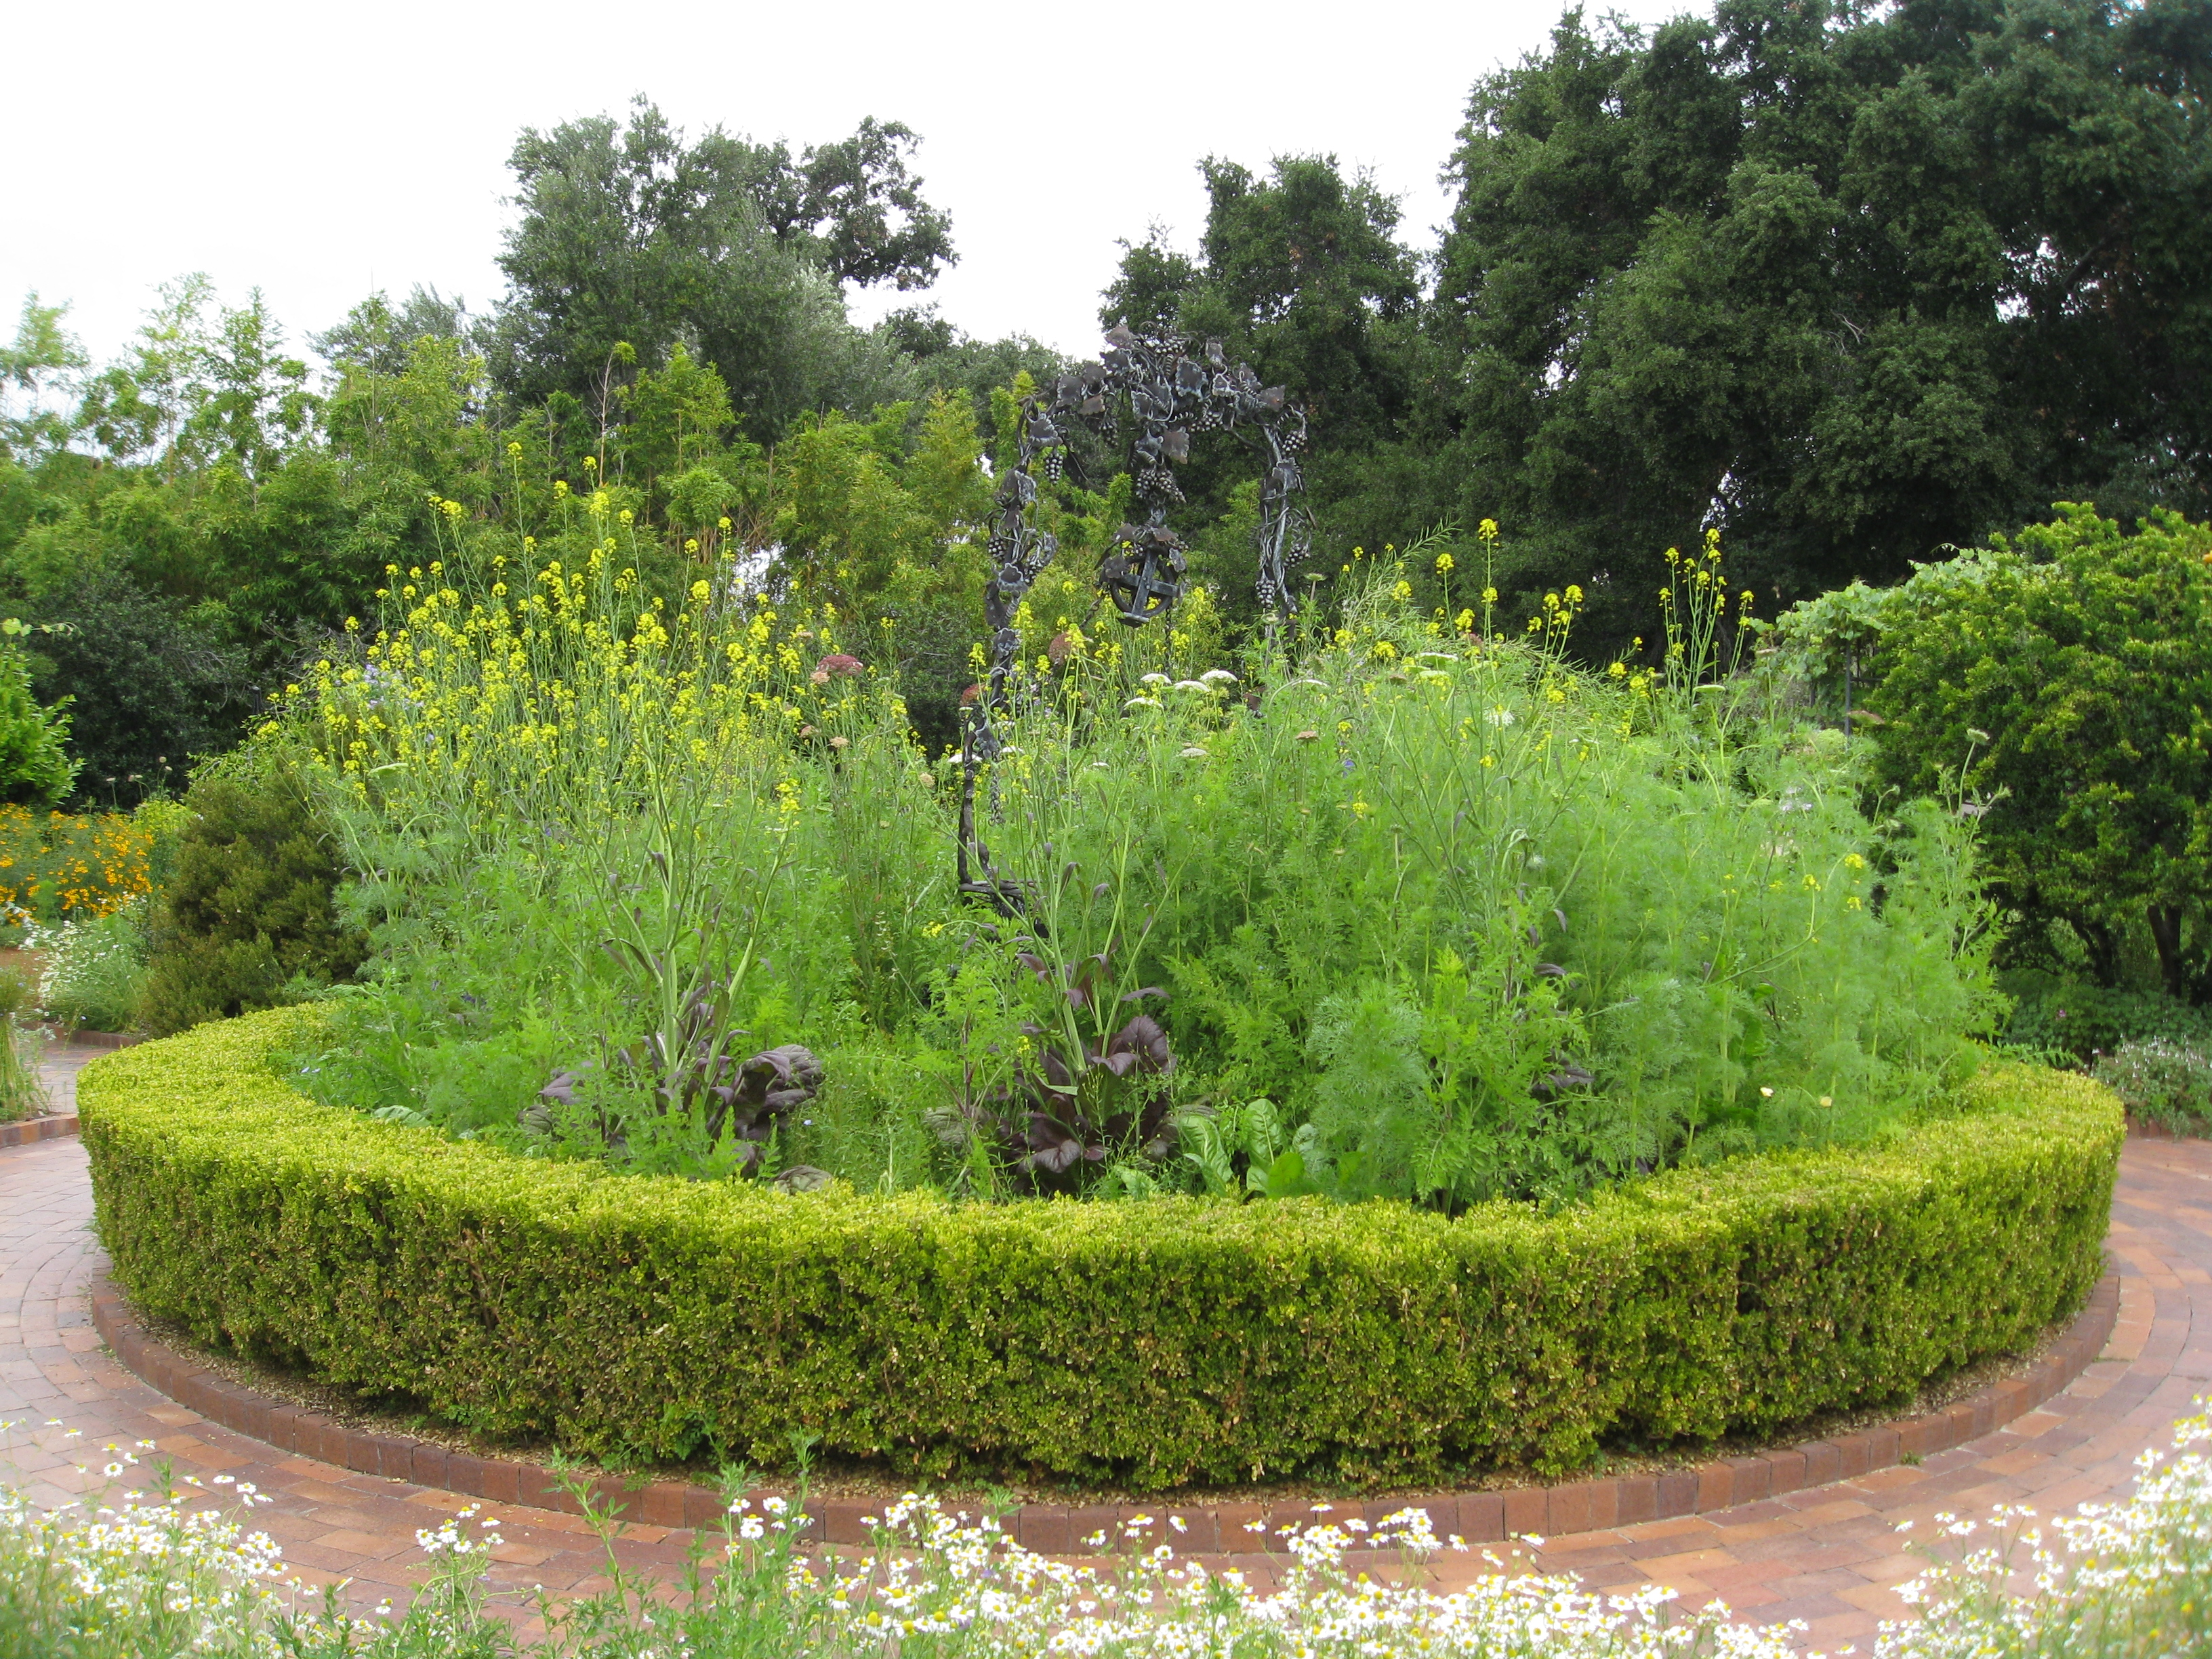 Mustard greens and Queen Anne's Lace reach for the sky.